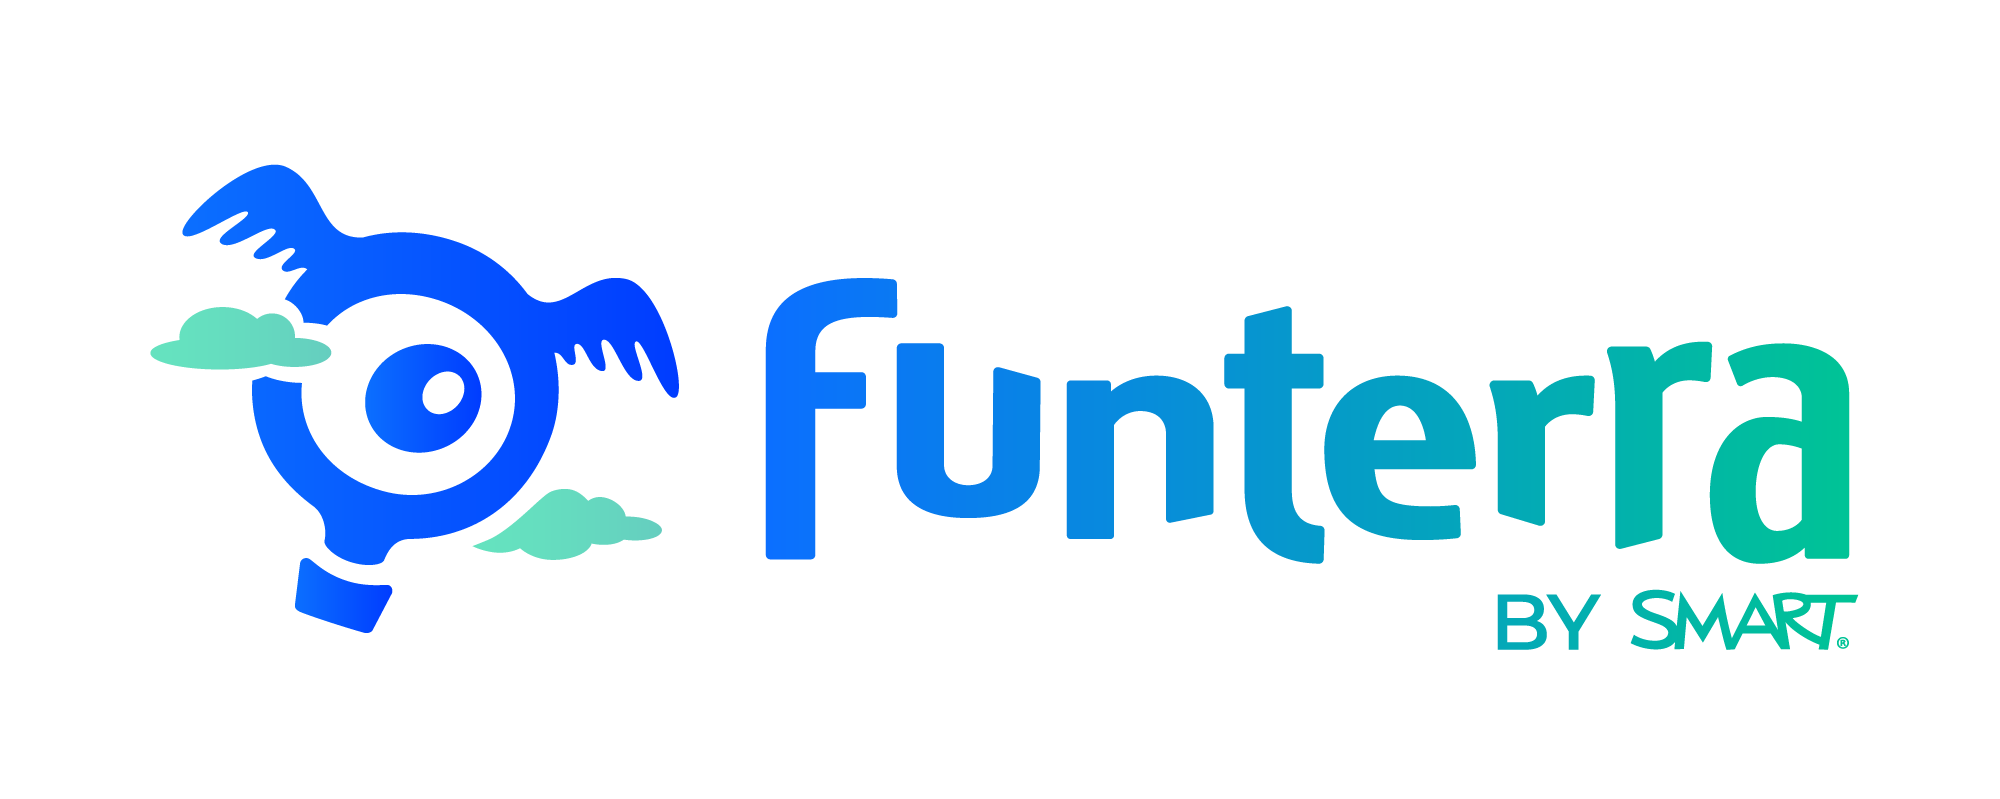 Welcome to Funterra